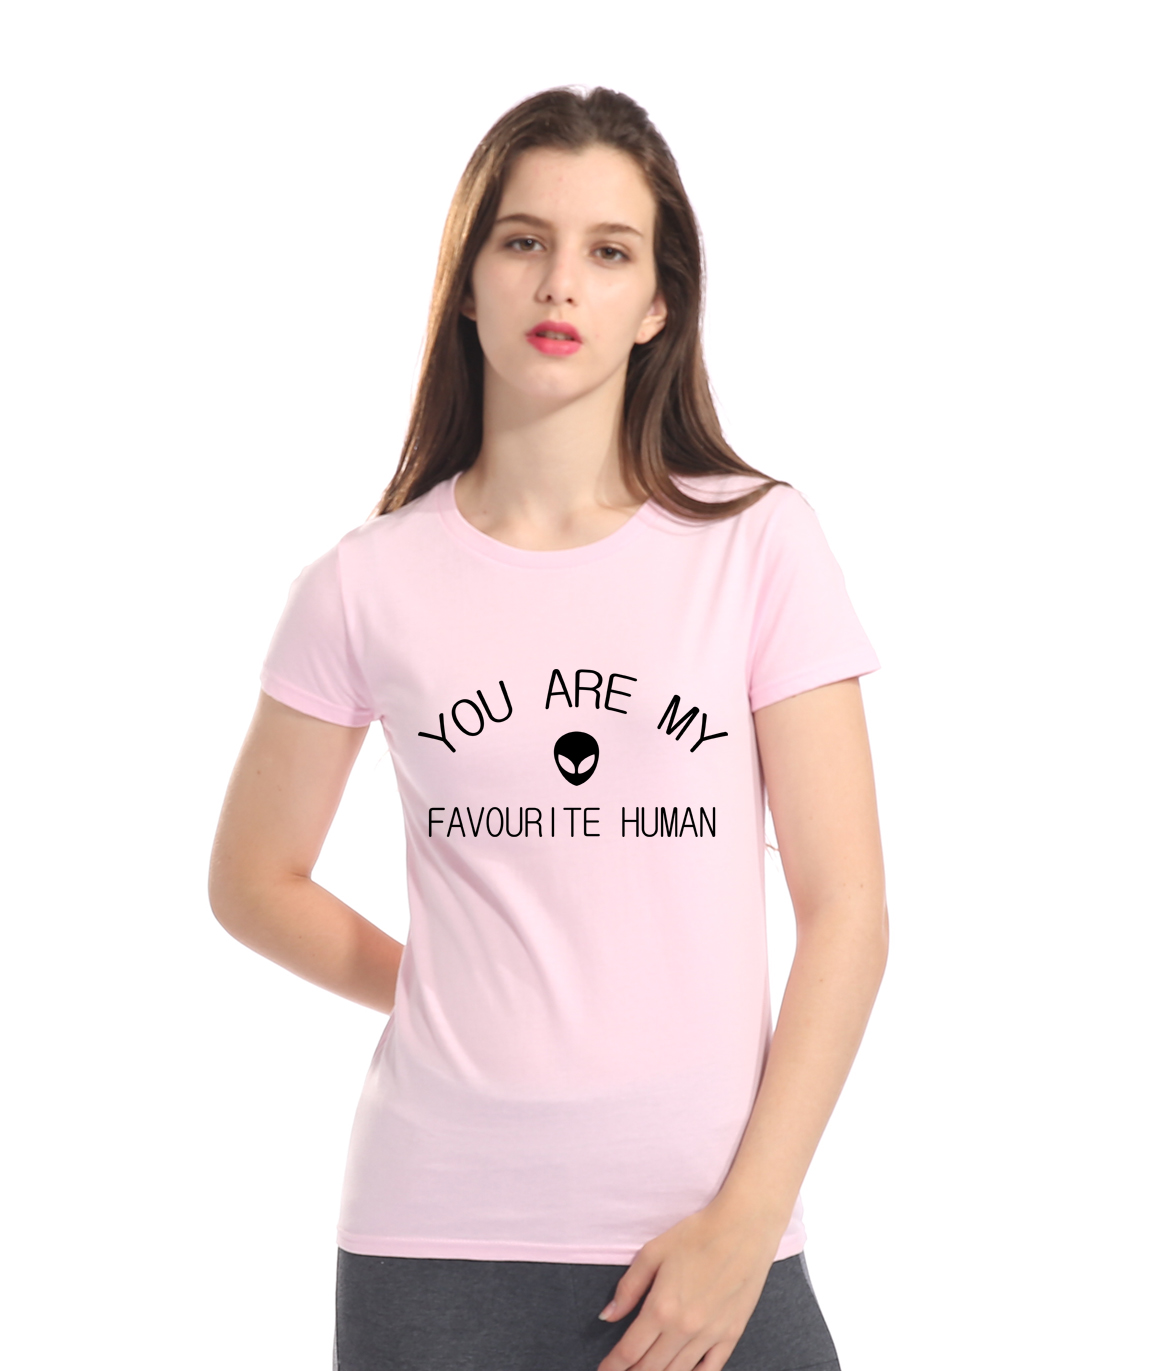 YOU ARE MY FAVOURITE HUMAN Alien Print T-shirts for women 2018 summer brand clothing various colours available female T-shirt